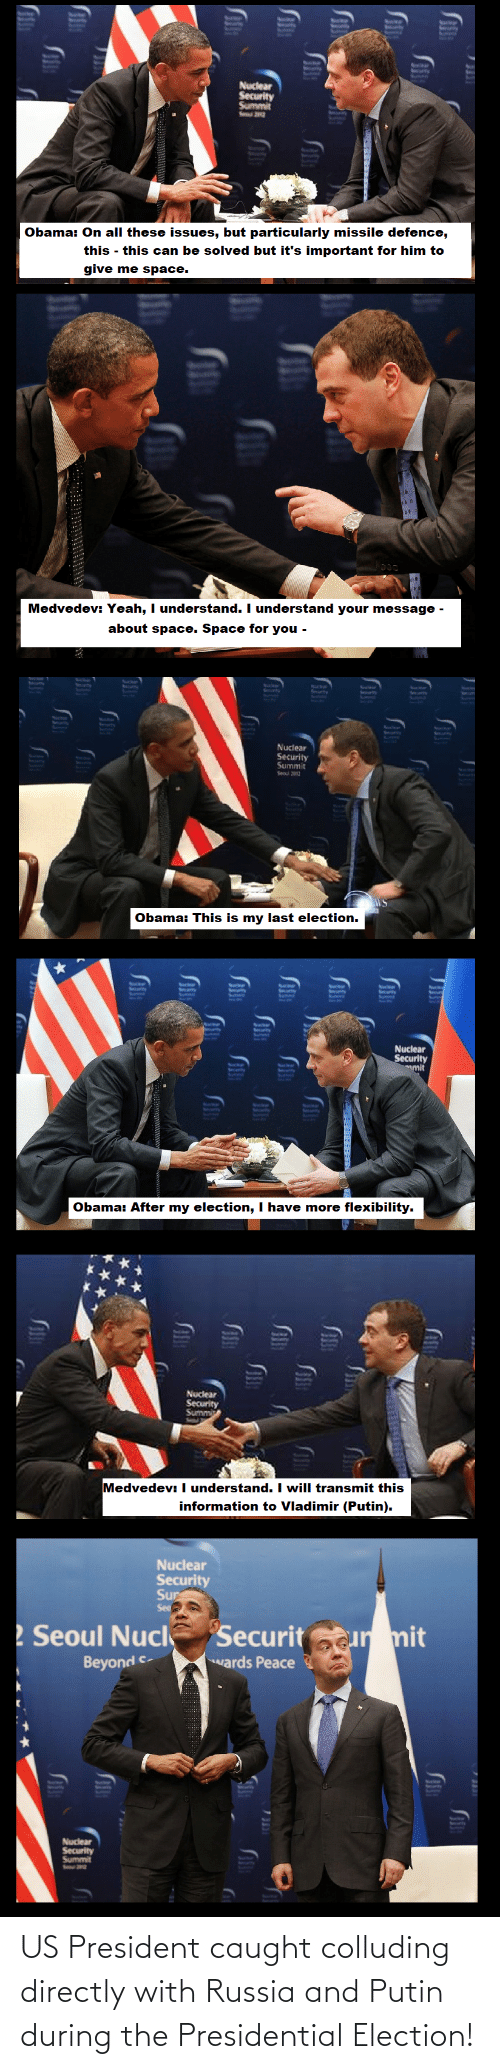 Give Me Space: Nuclear  Security  Summit  Se 2  Obama: On all these issues, but particularly missile defence,  this - this can be solved but it's important for him to  give me space.  Medvedev: Yeah, I understand. I understand your message -  about space. Space for you -  Nuclear  Security  Summit  Seoul 2012  Obama: This is my last election.  Nuclear  Security  mit  Obama: After my election, I have more flexibility.  Nuclear  Security  Summi  Medvedev:  I understand. I will transmit this  information to Vladimir (Putin).  Nuclear  Security  Sur  Seo  ! Seoul Nucl  Securitur mit  wards Peace  Beyond c-  Nuclear  Security  Summit US President caught colluding directly with Russia and Putin during the Presidential Election!